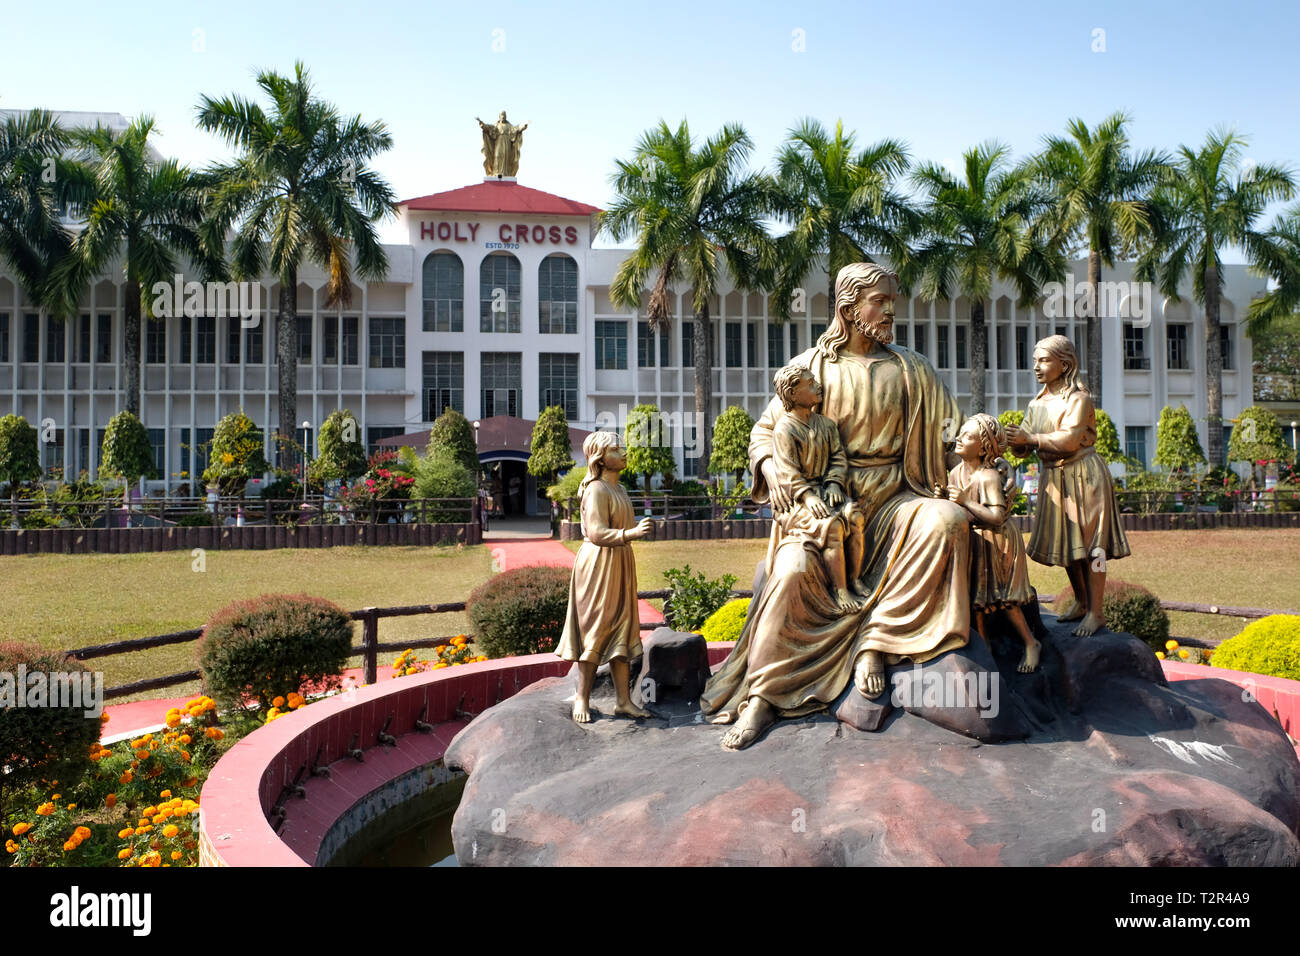 Bronze statue of Jesus Christ with children in front of the Catholic Holy Cross School in Argatala, State of Tripura, Northeast India.   ---   katholische Holy Cross School in Argatala, Bundesstaat Tripura, Nordost-Indien. - Stock Image